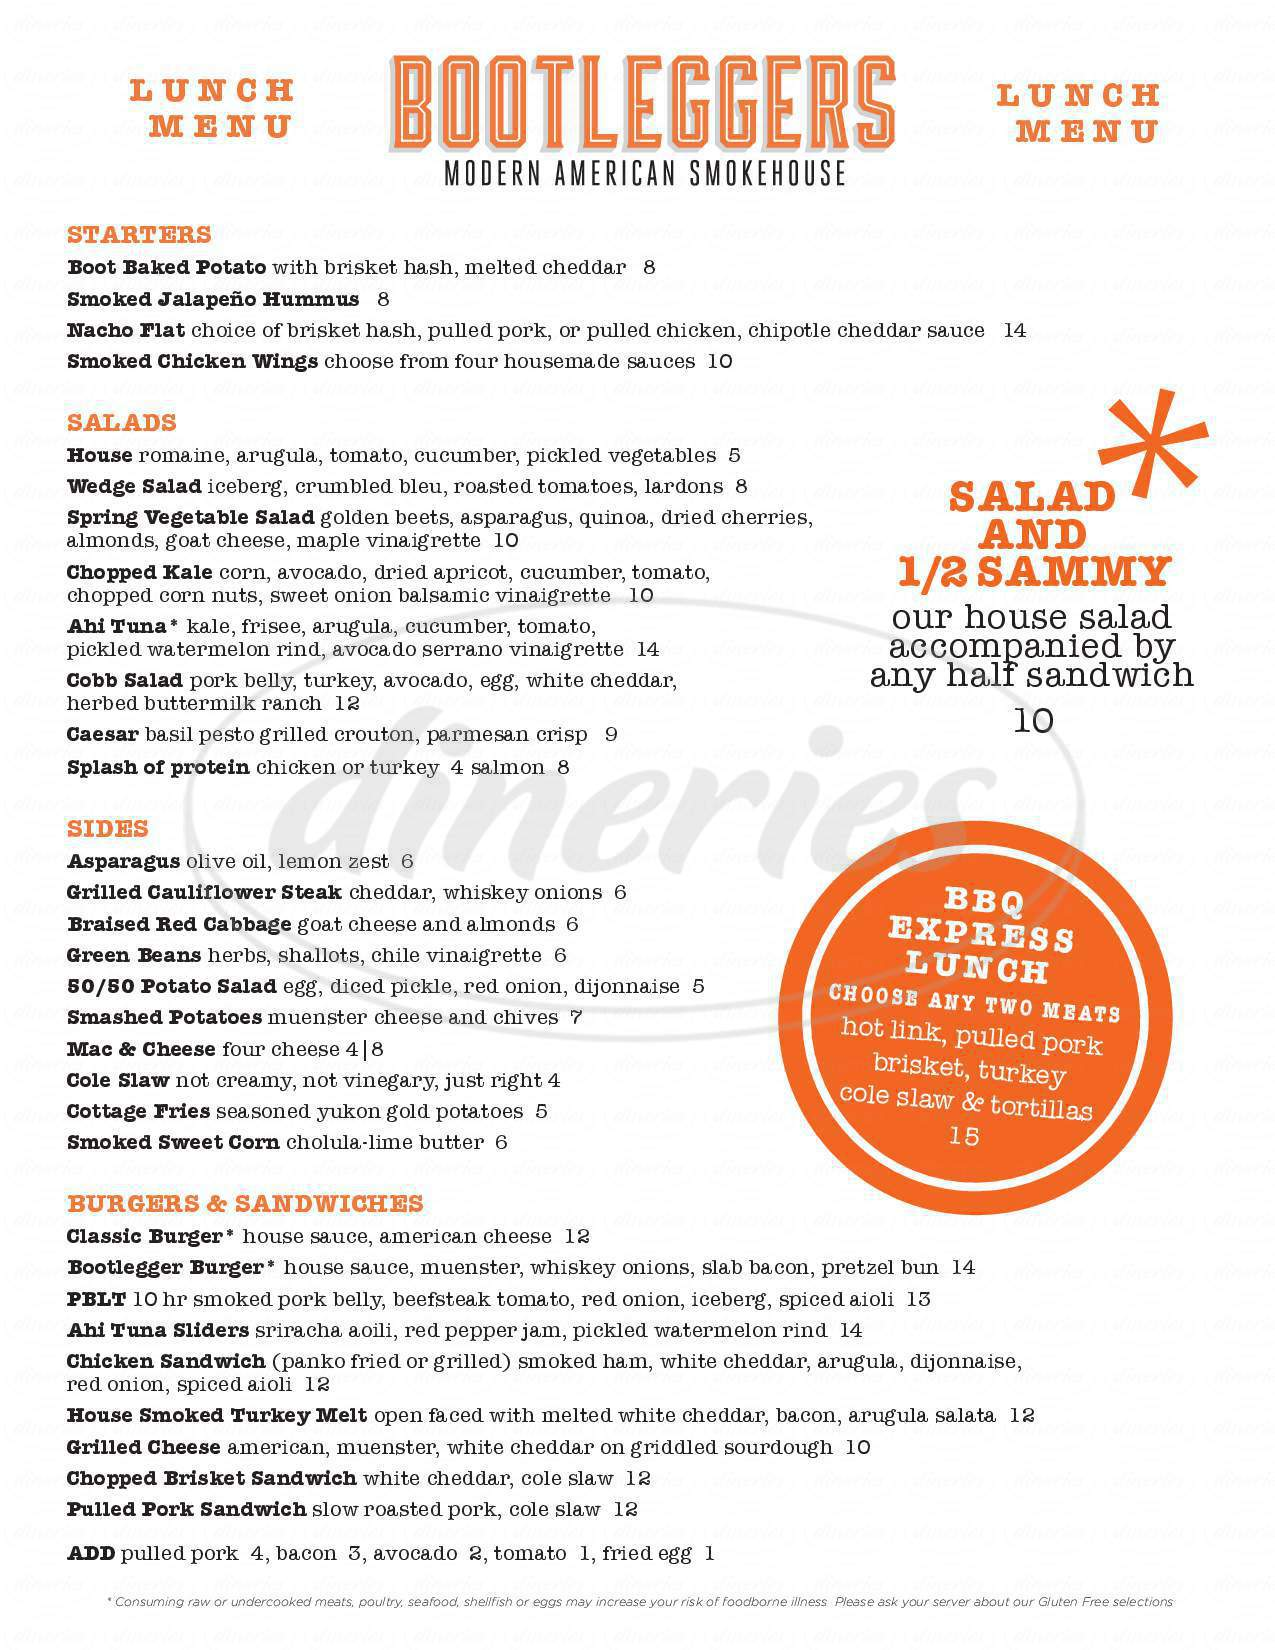 menu for Bootleggers Modern American Smokehouse